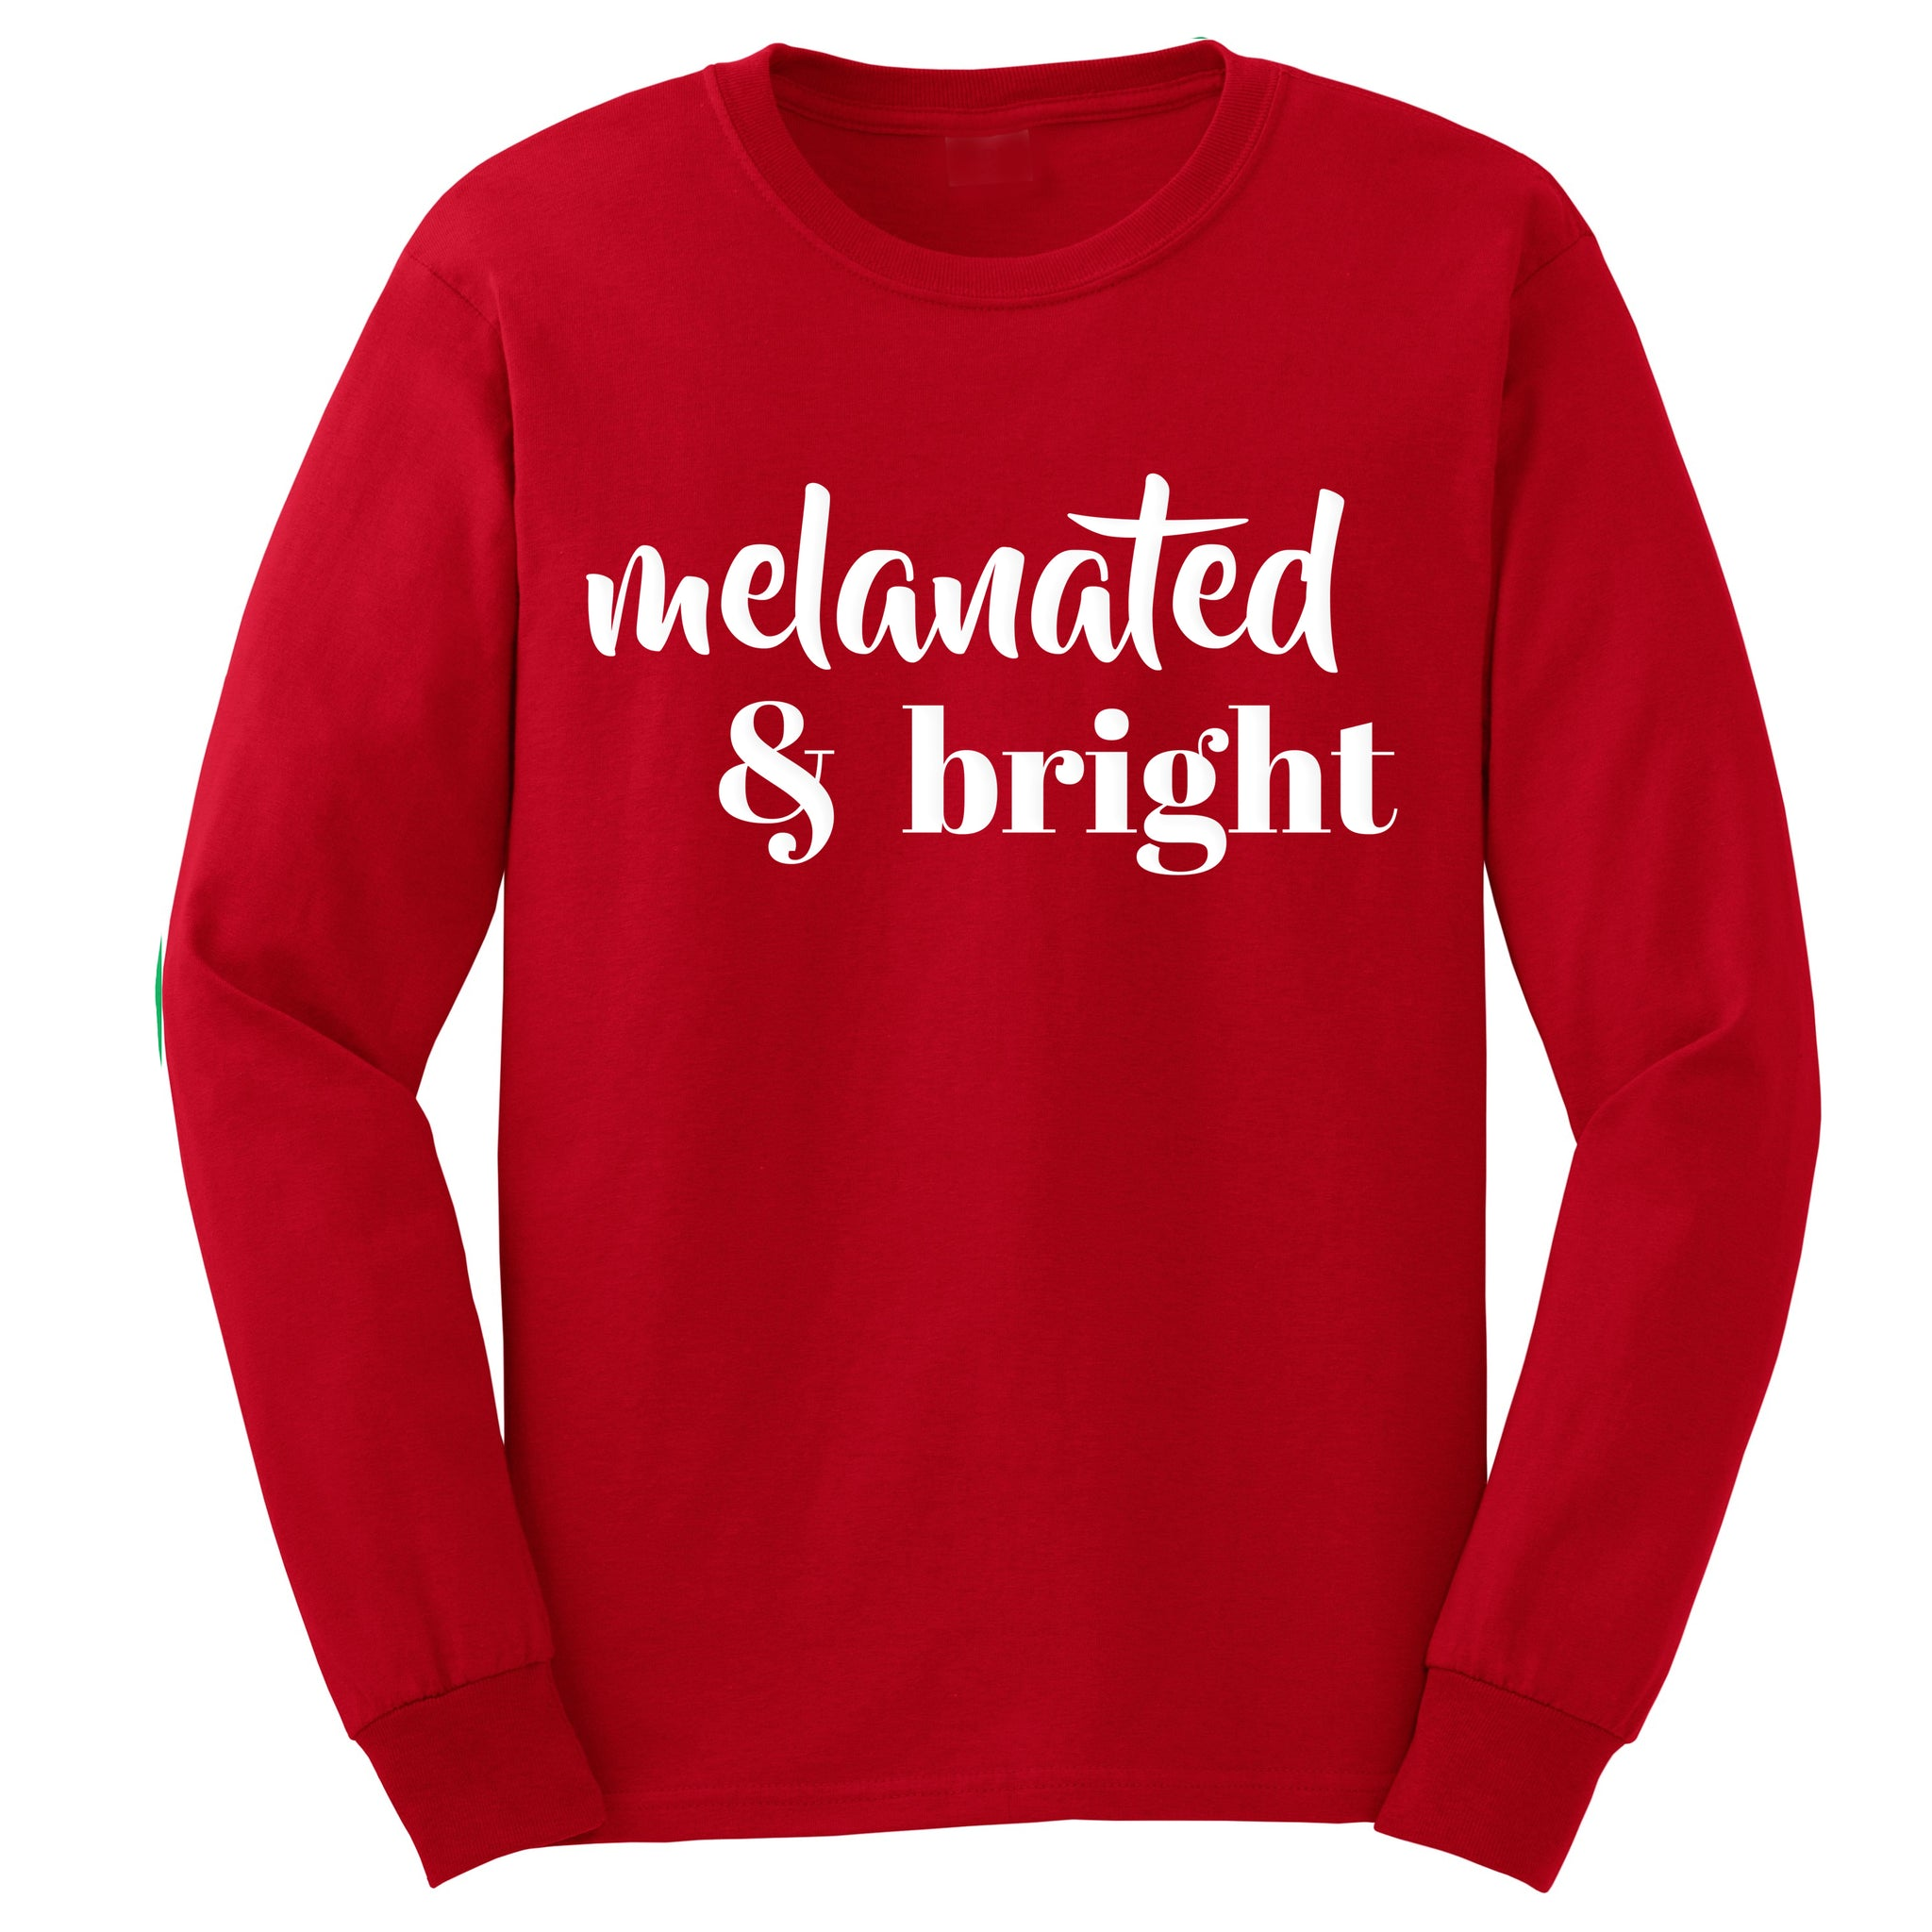 Melanated & Bright Holiday Long Tee • Red/White • Youth - apparel for families of color | black owned business